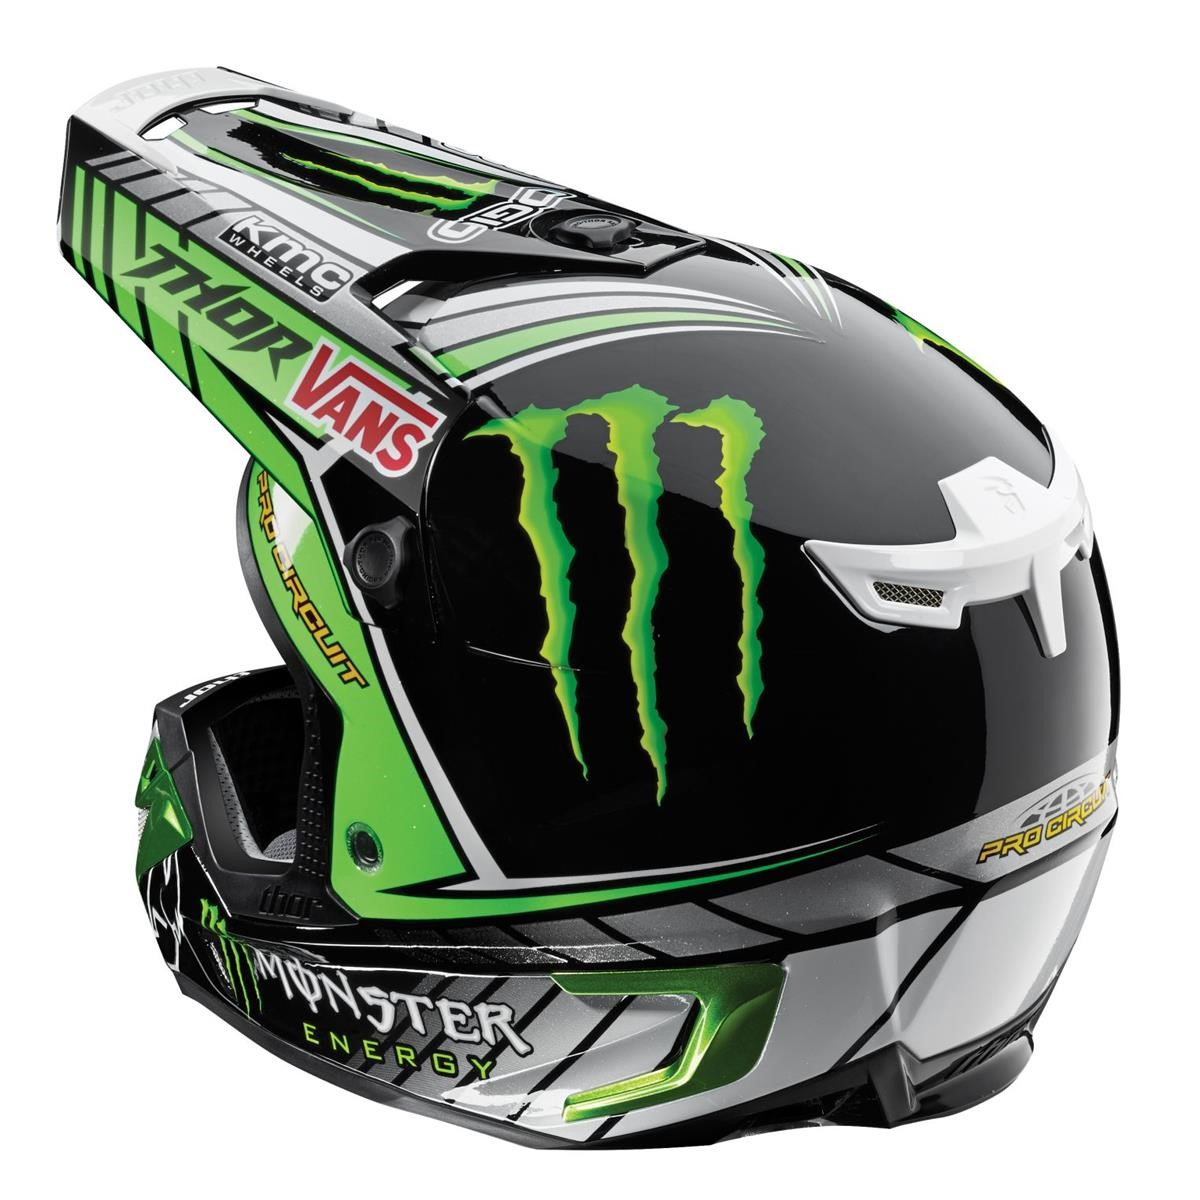 thor helmet verge pro circuit monster black green 2015 maciag offroad. Black Bedroom Furniture Sets. Home Design Ideas